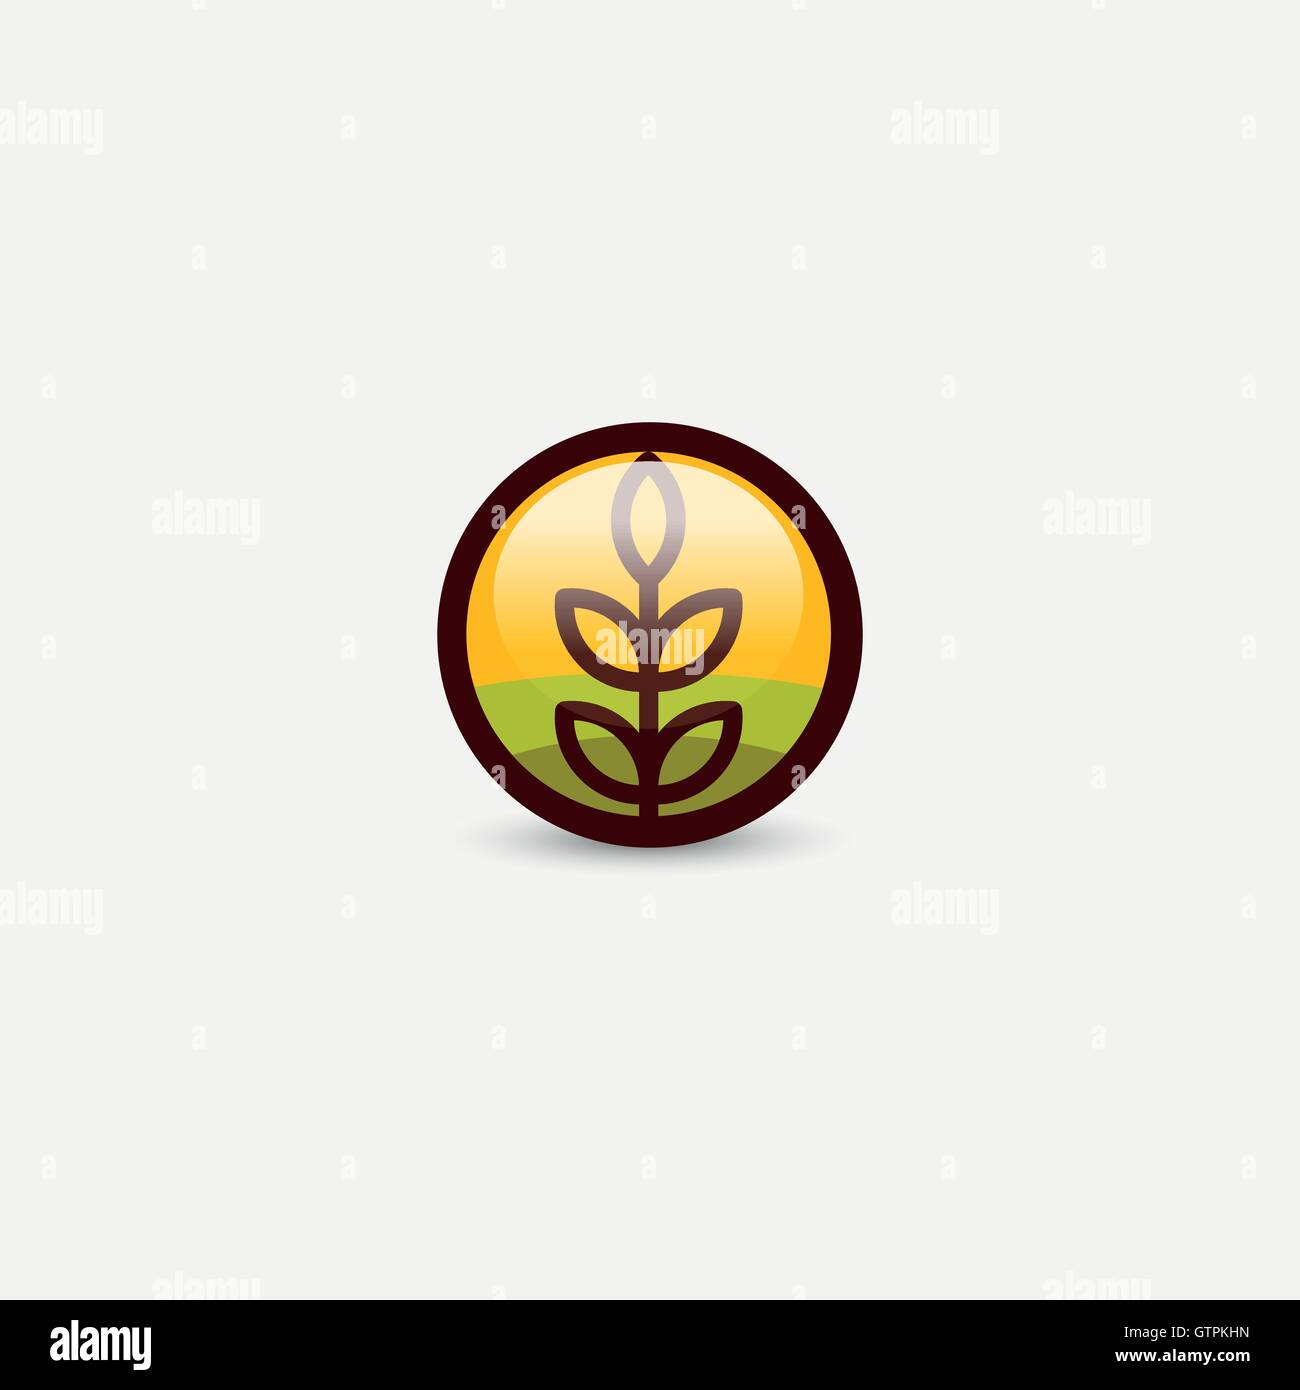 Isolated round shape abstract agricultural vector logo. Wheat ear silhouette logotype. Farm icon. Harvesting illustration. - Stock Vector